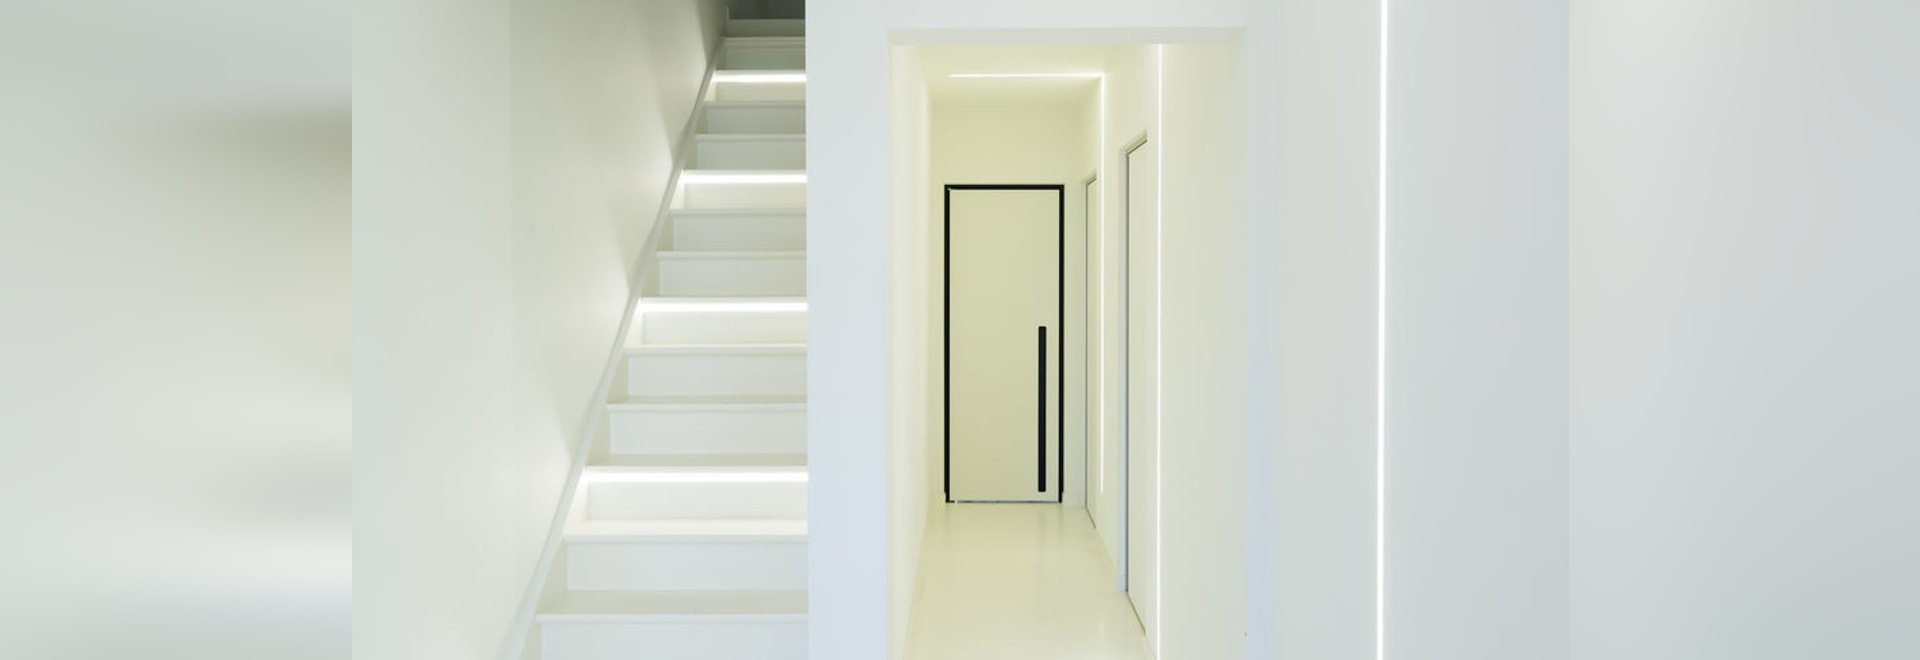 Modern interior doors with built-in handles